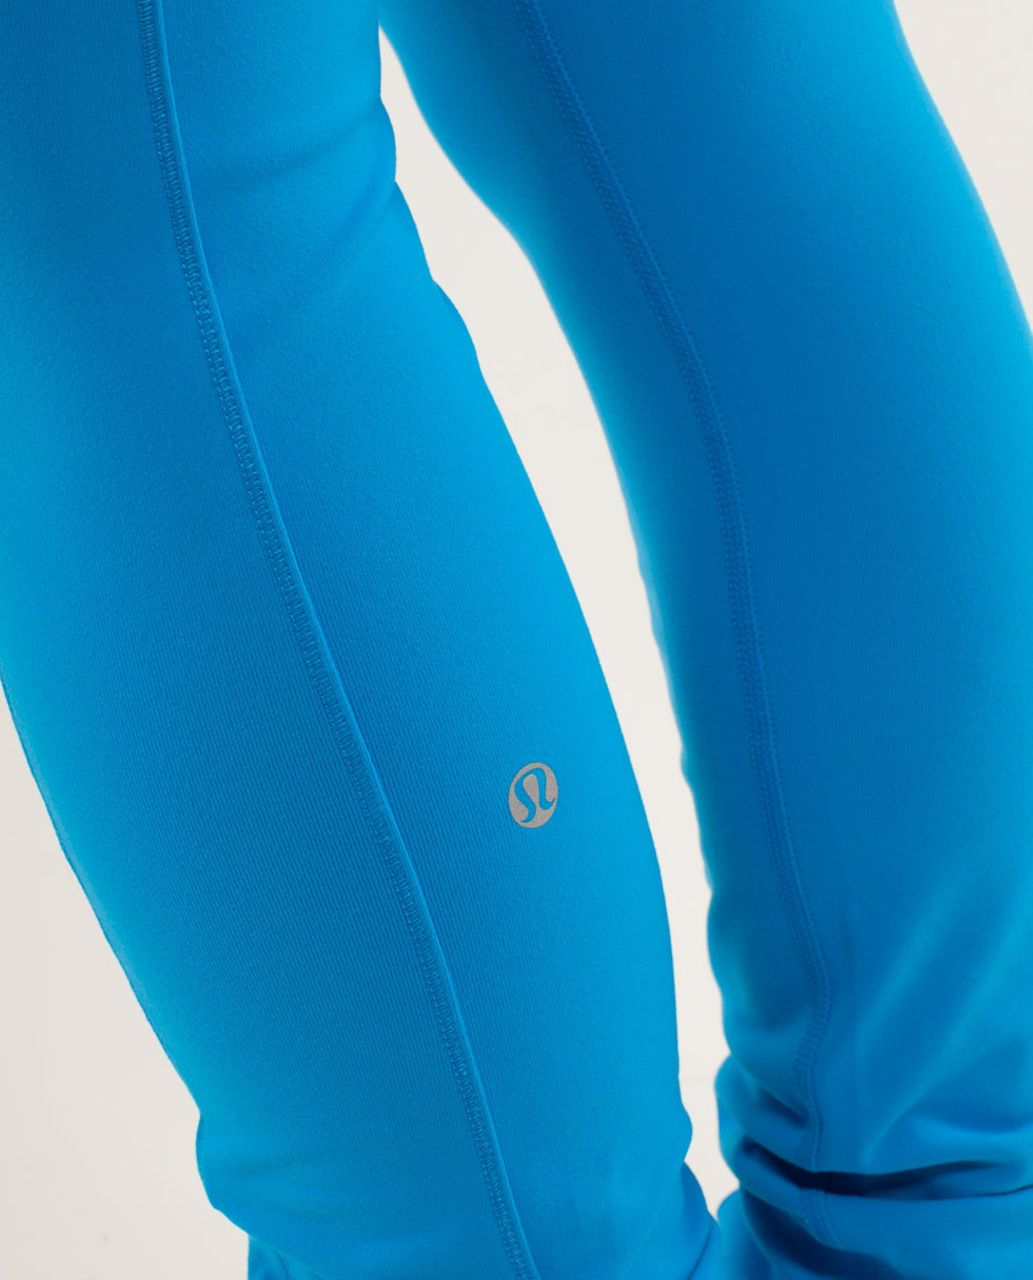 Lululemon Presence Pant (Tall) - Beach Blanket Blue